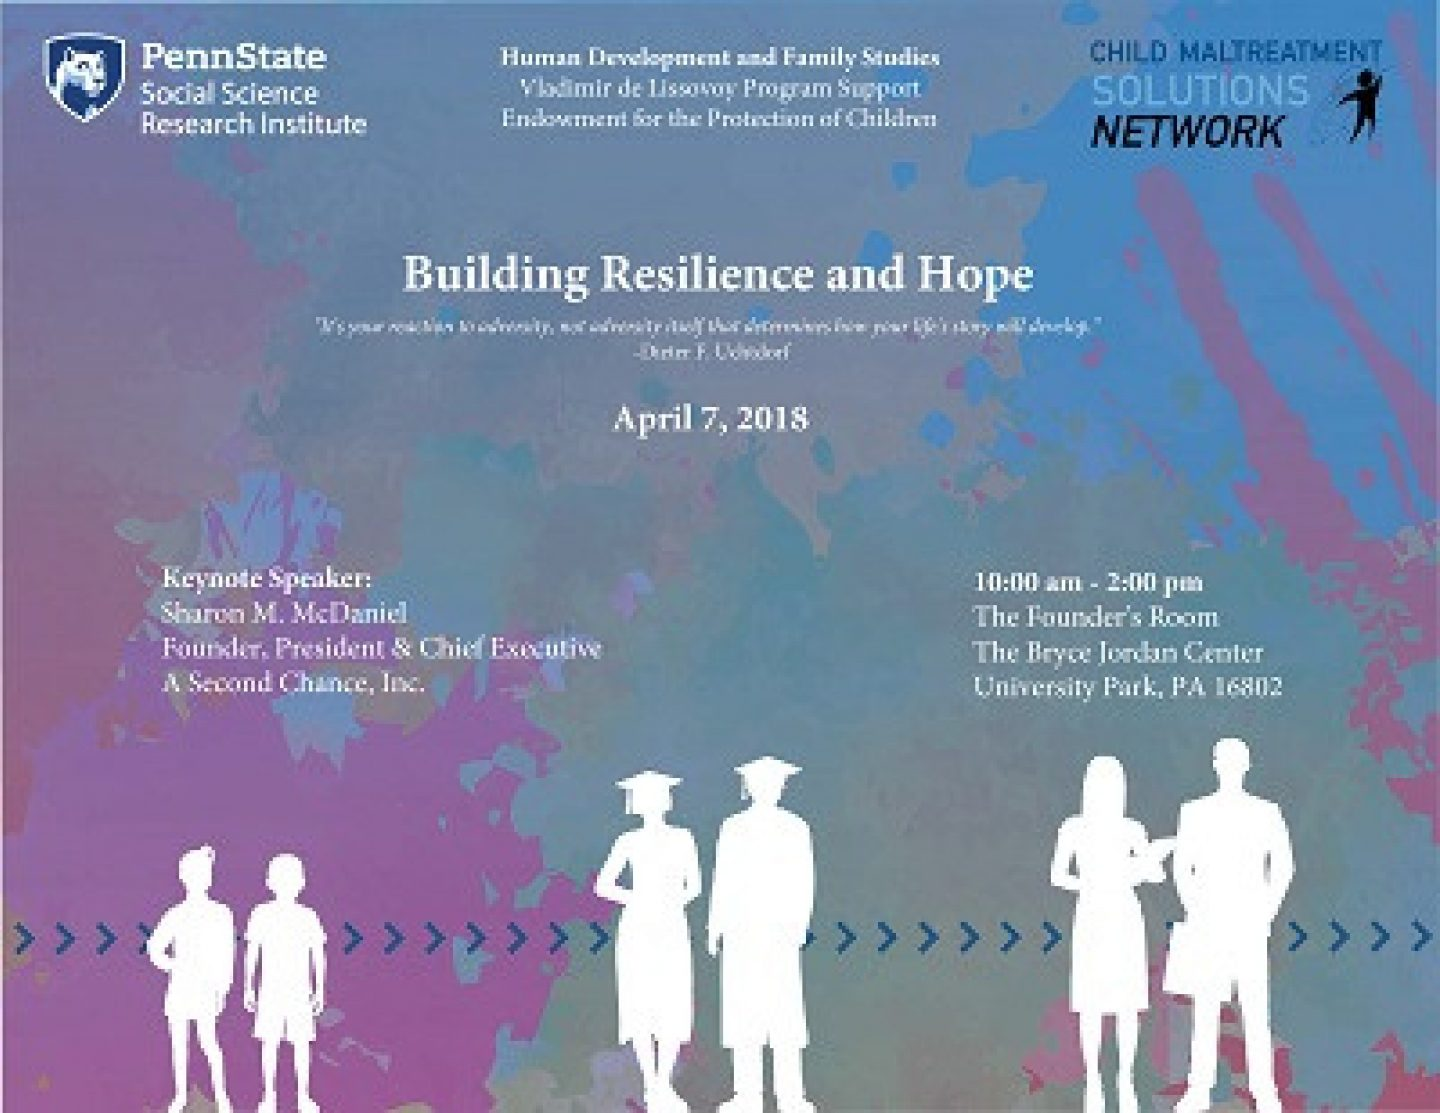 Child Maltreatment Solutions Network's Spring Awareness Event